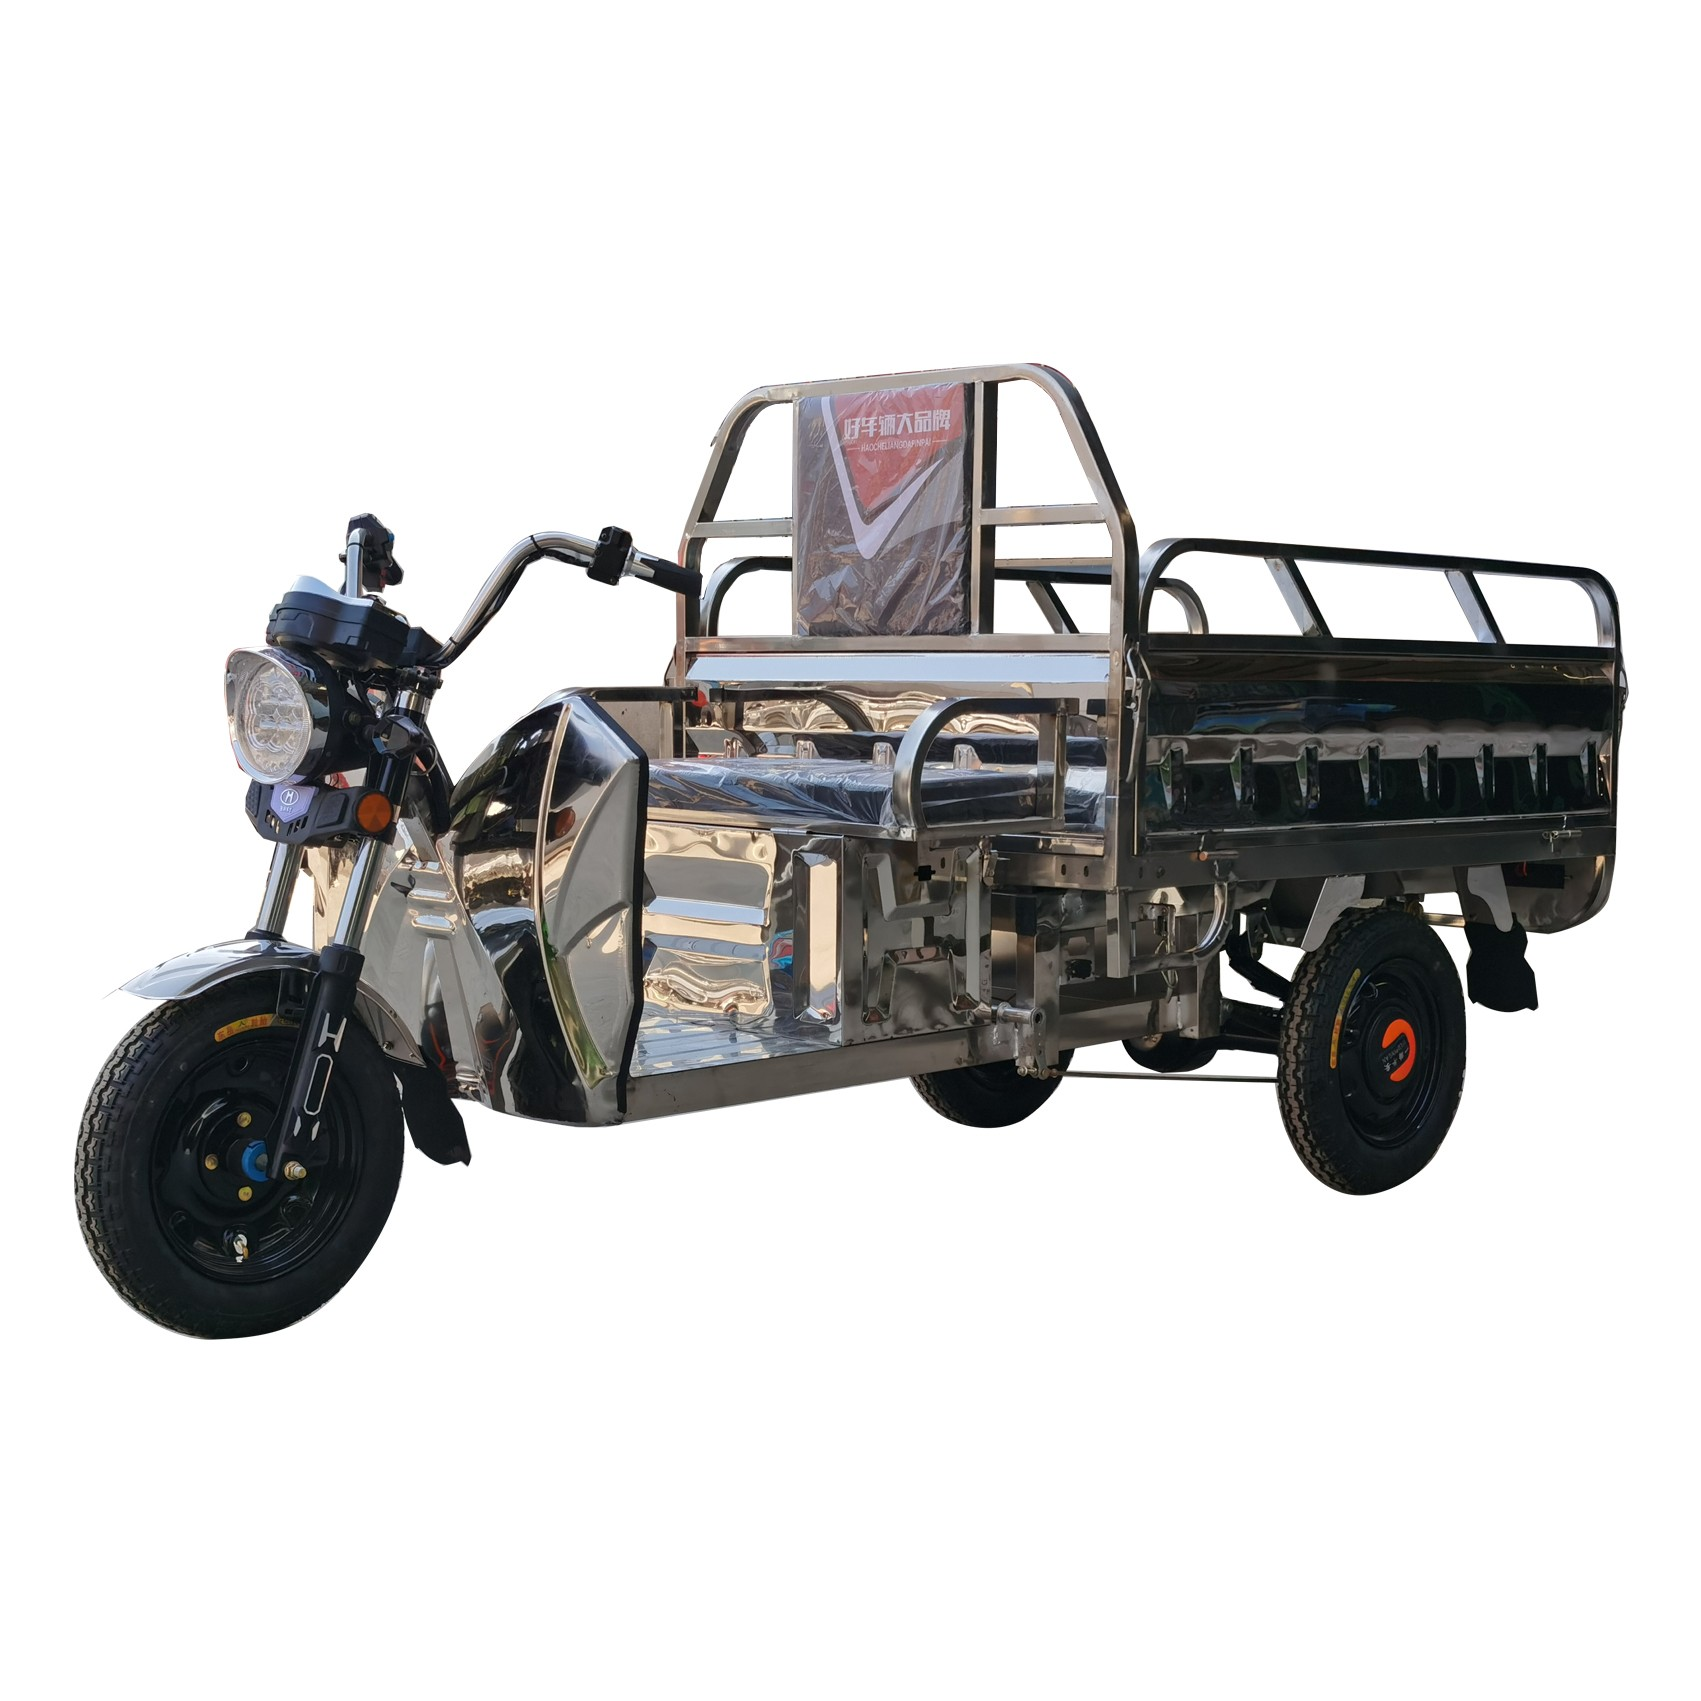 Solar Panel electric Tricycle 3-Wheel Cargo Loader Manufacturers, Solar Panel electric Tricycle 3-Wheel Cargo Loader Factory, Supply Solar Panel electric Tricycle 3-Wheel Cargo Loader